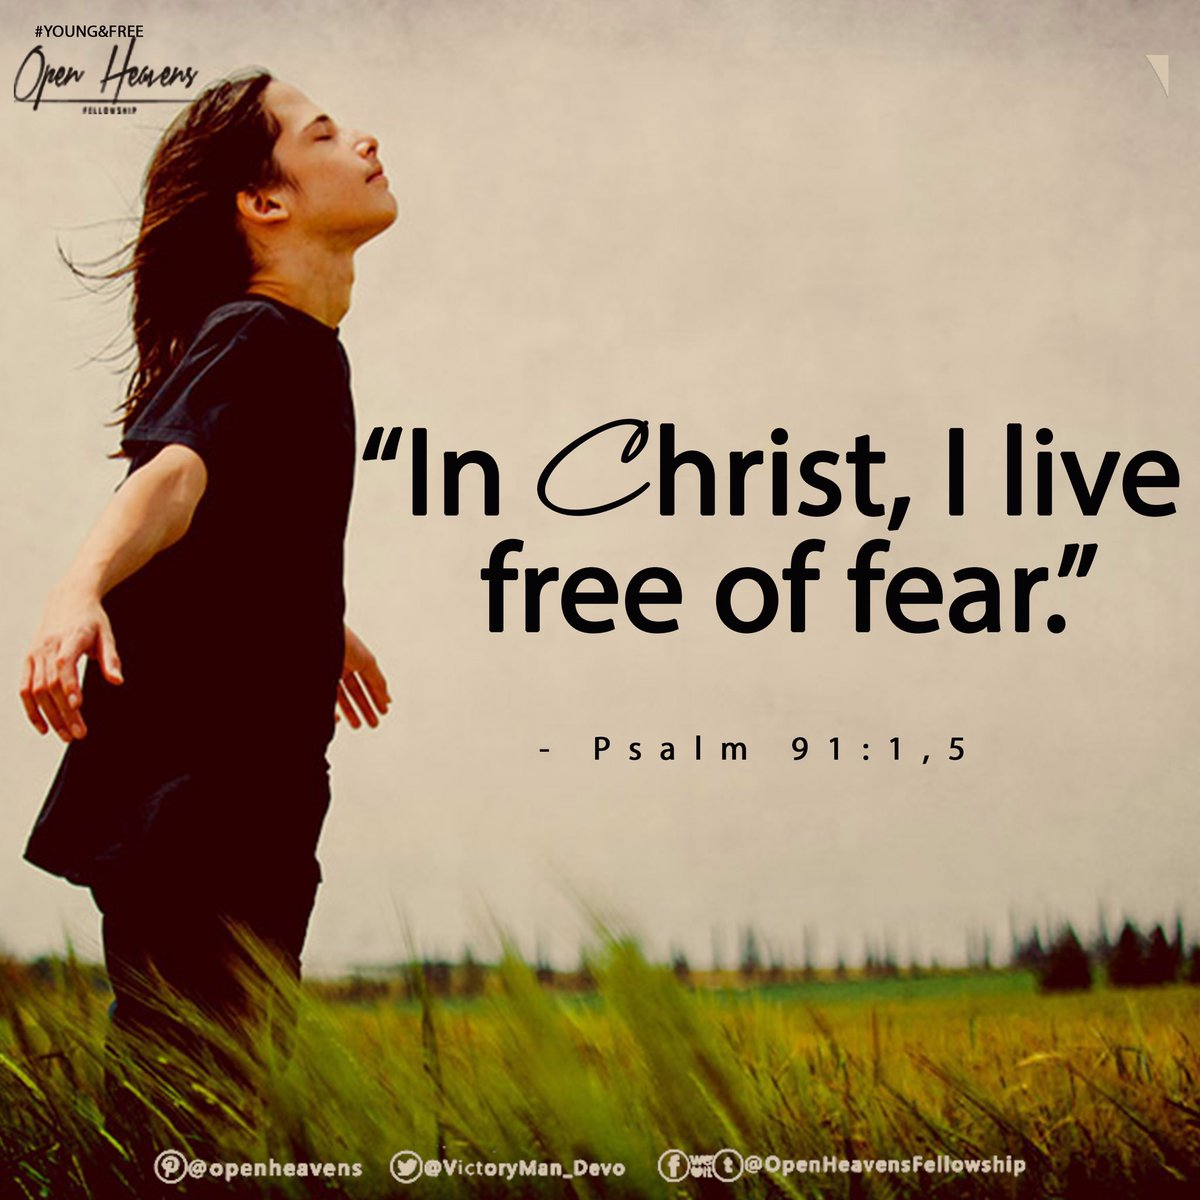 #live #fear #Christ #free #young #teens #freedom #youth #joy #Peaceful...